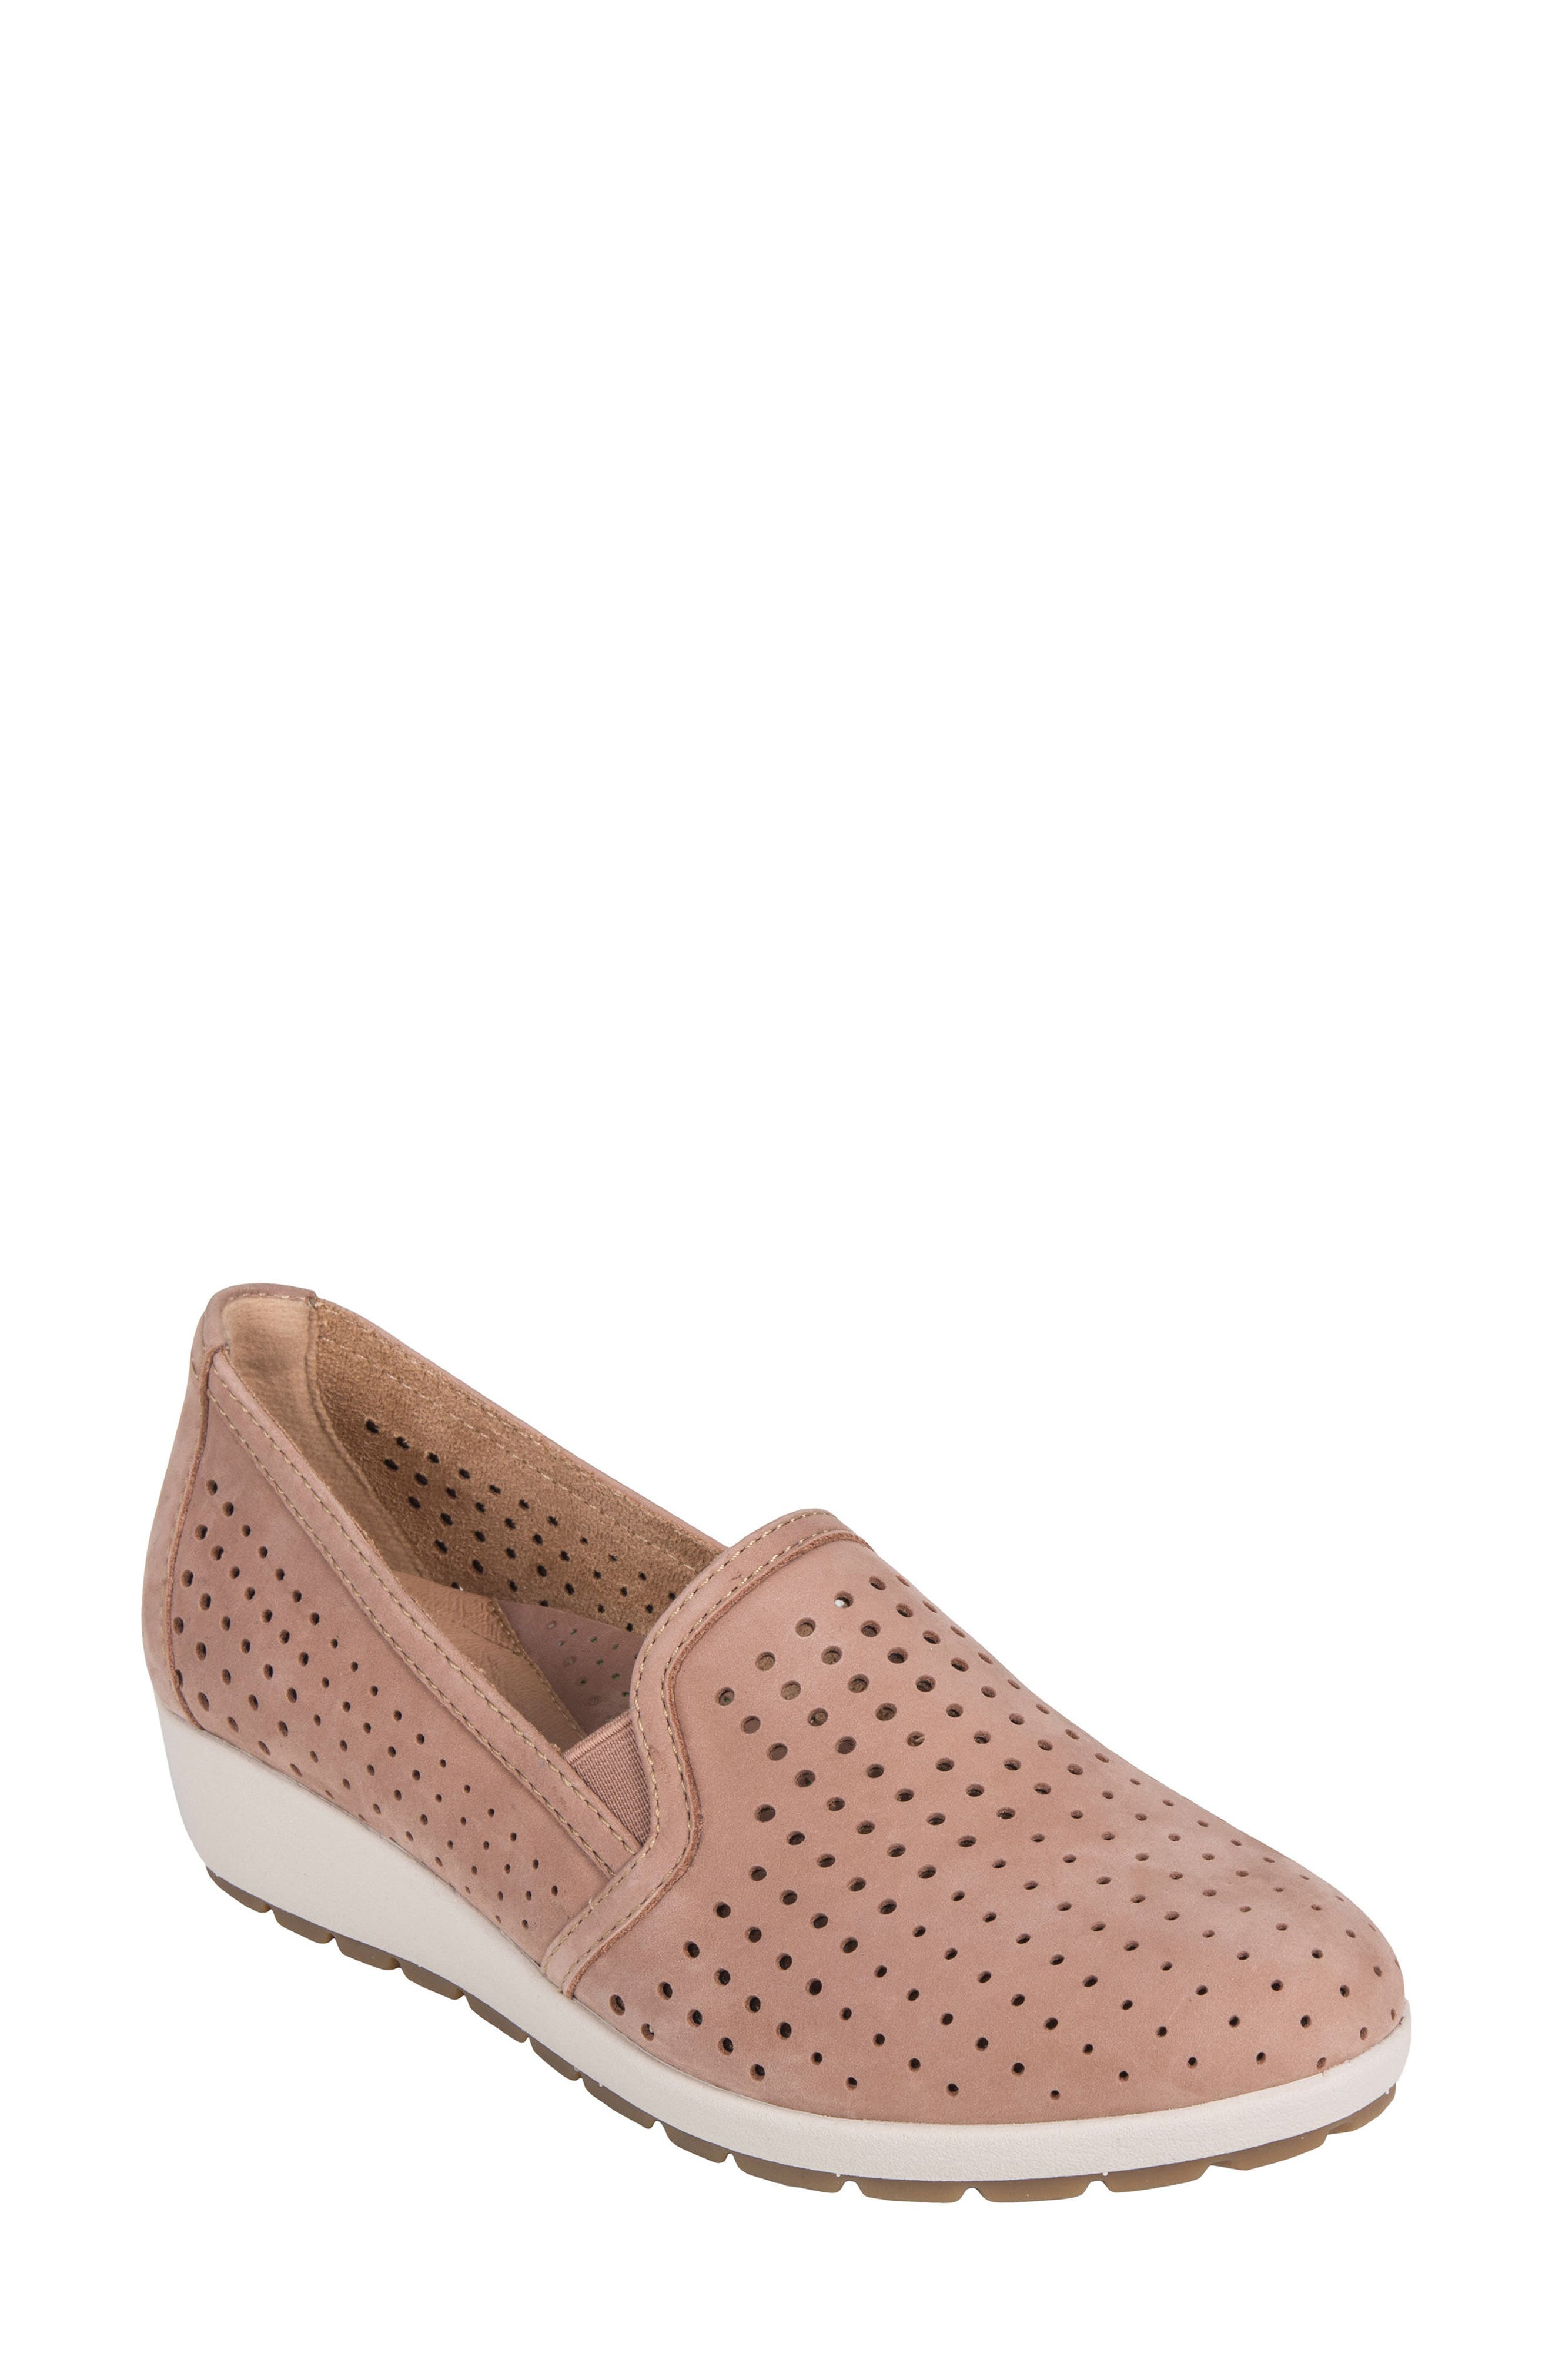 Earth Juniper Perforated Slip-On Wedge- Pink